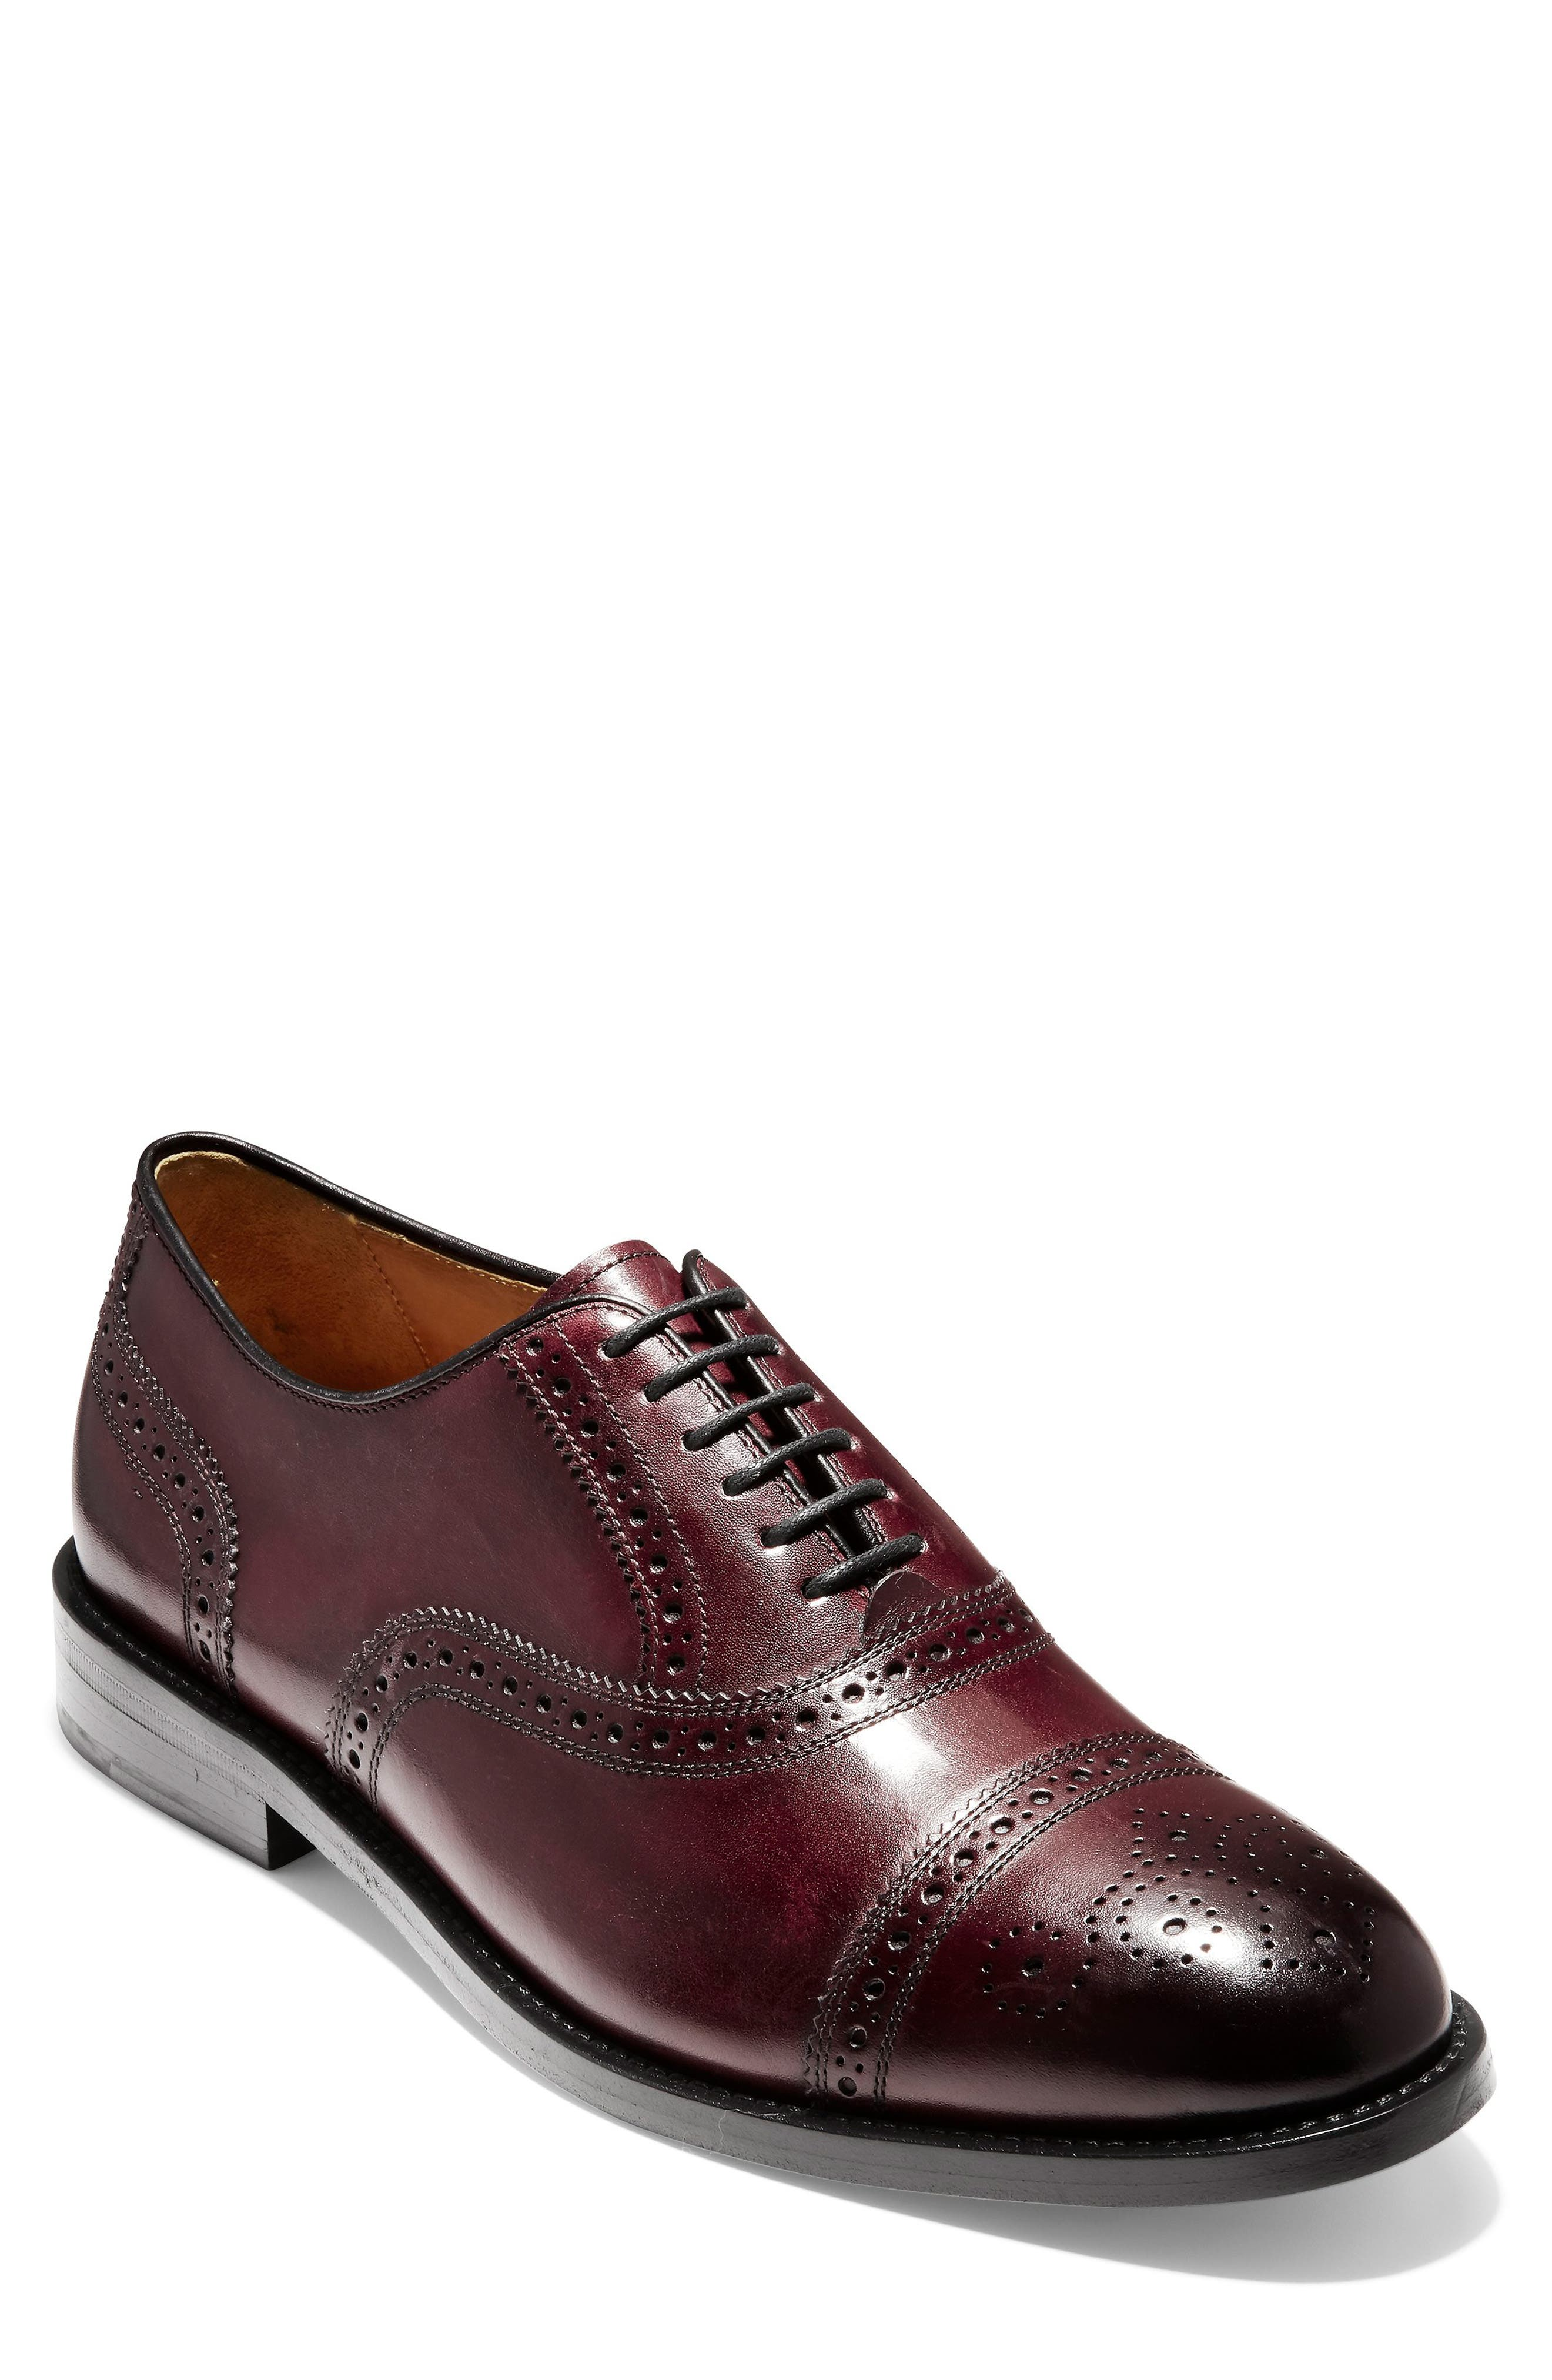 American Classics Kneeland Cap Toe Oxford,                             Main thumbnail 1, color,                             Oxblood Leather